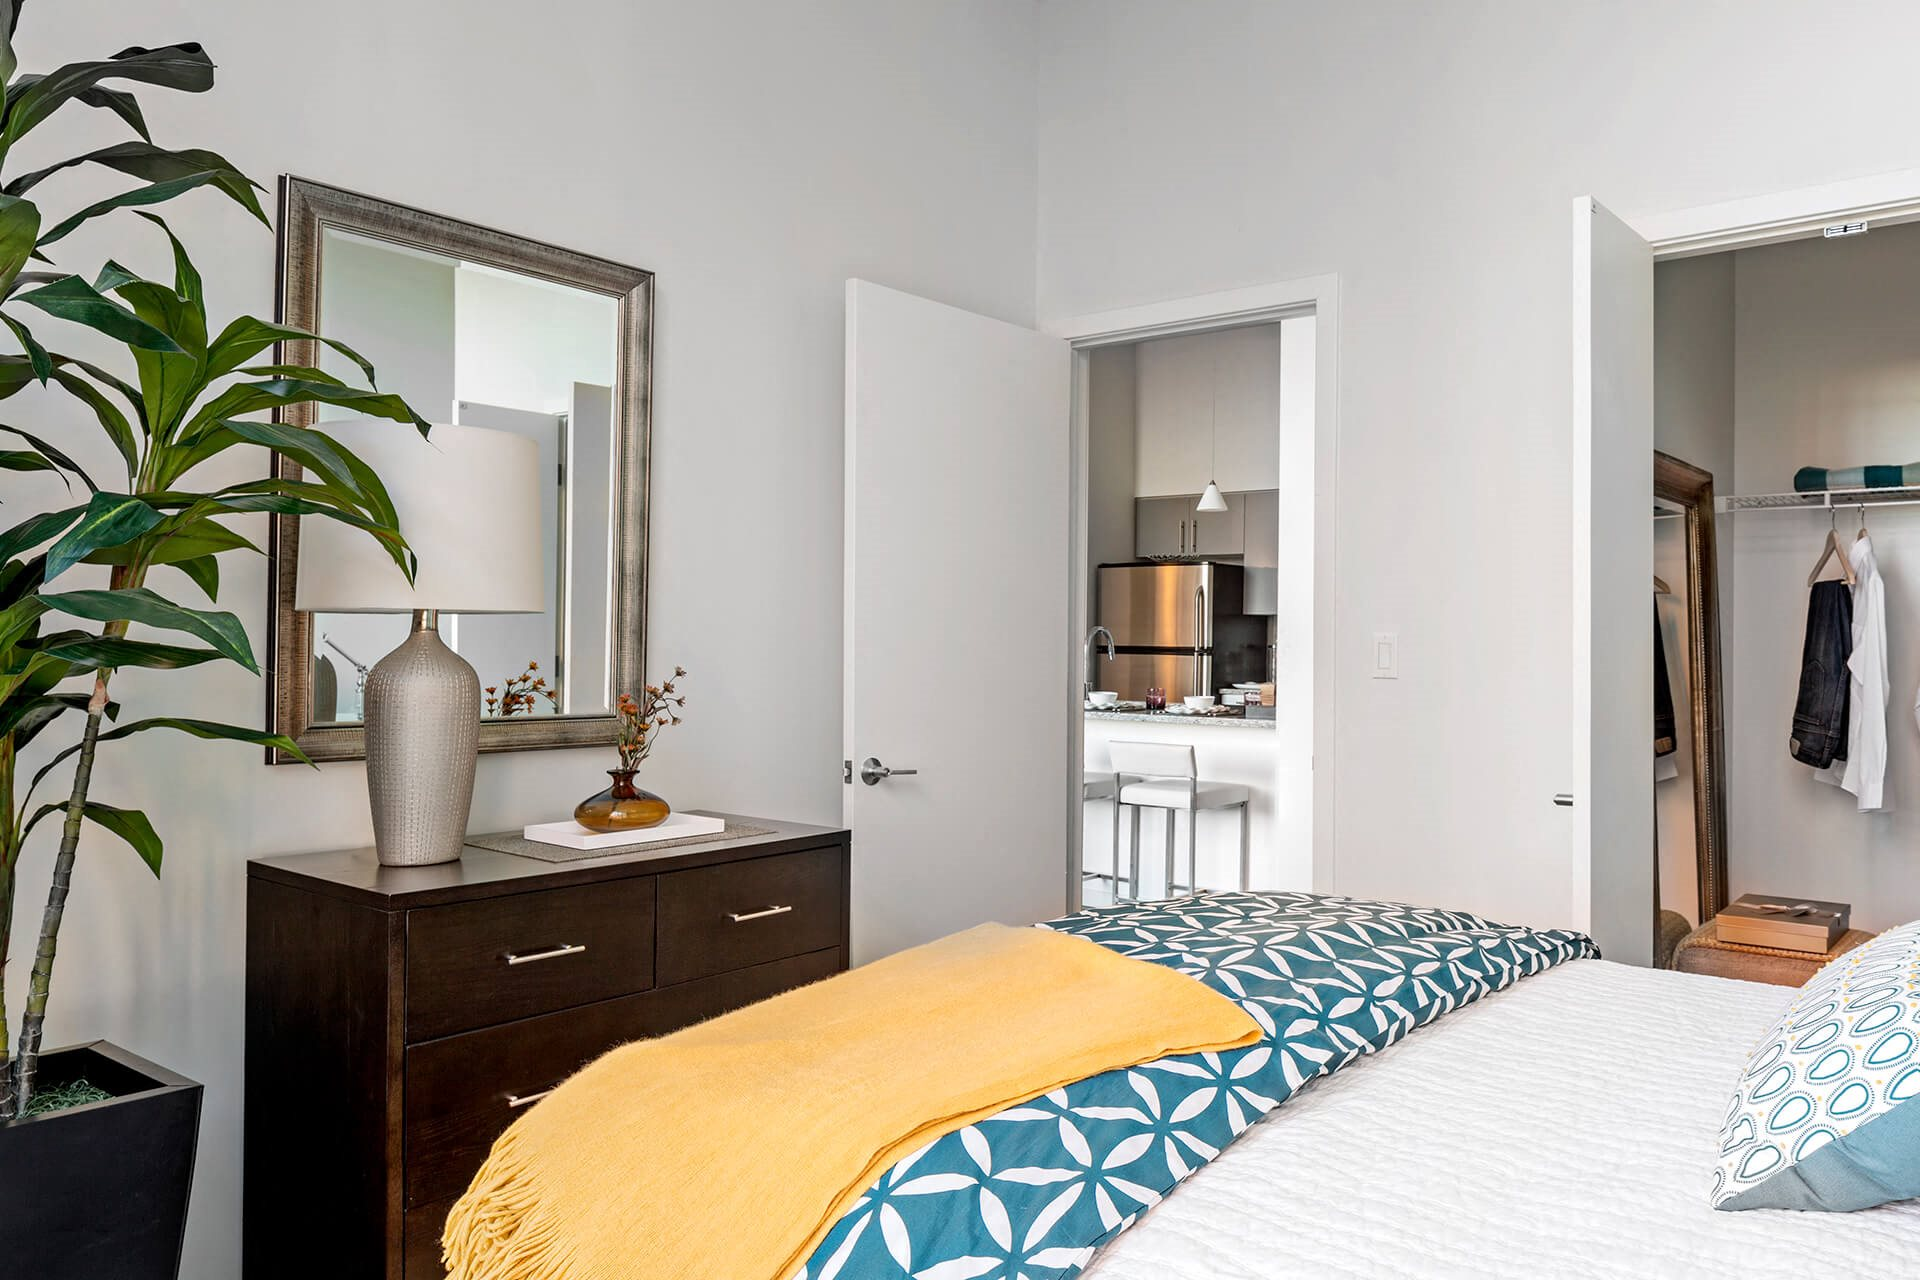 Ample Closet & Storage Space at Waterside Place by Windsor, 02210, MA